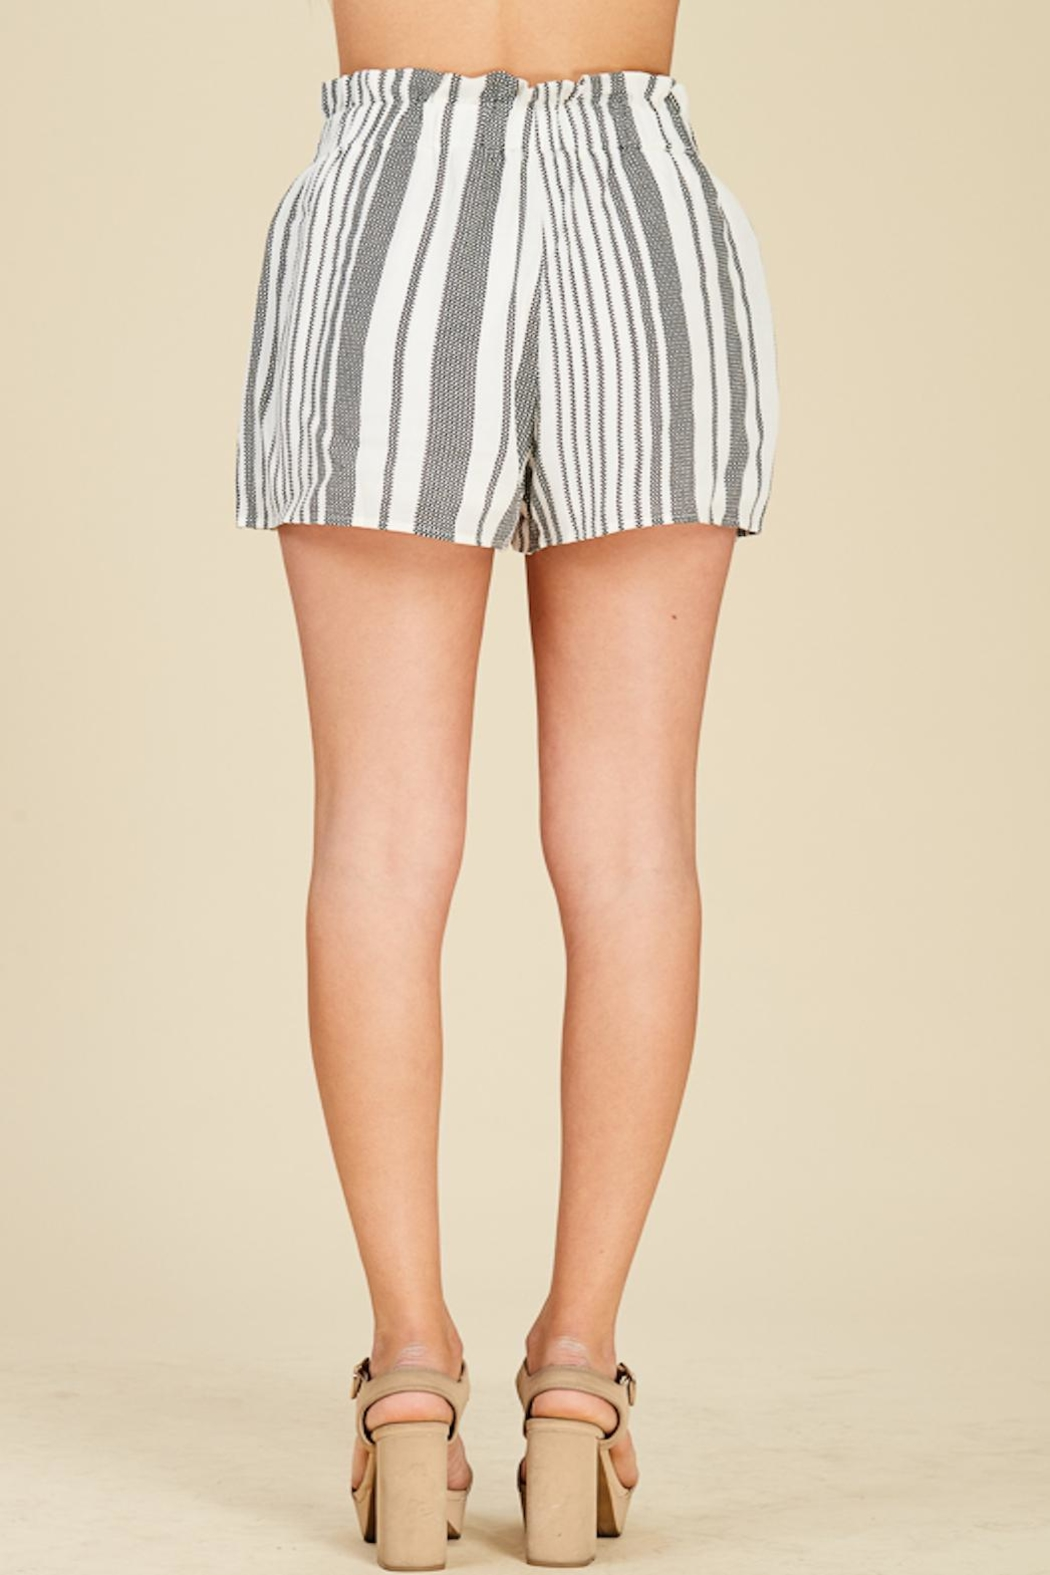 Apricot Lane Striped Bucket Shorts - Side Cropped Image